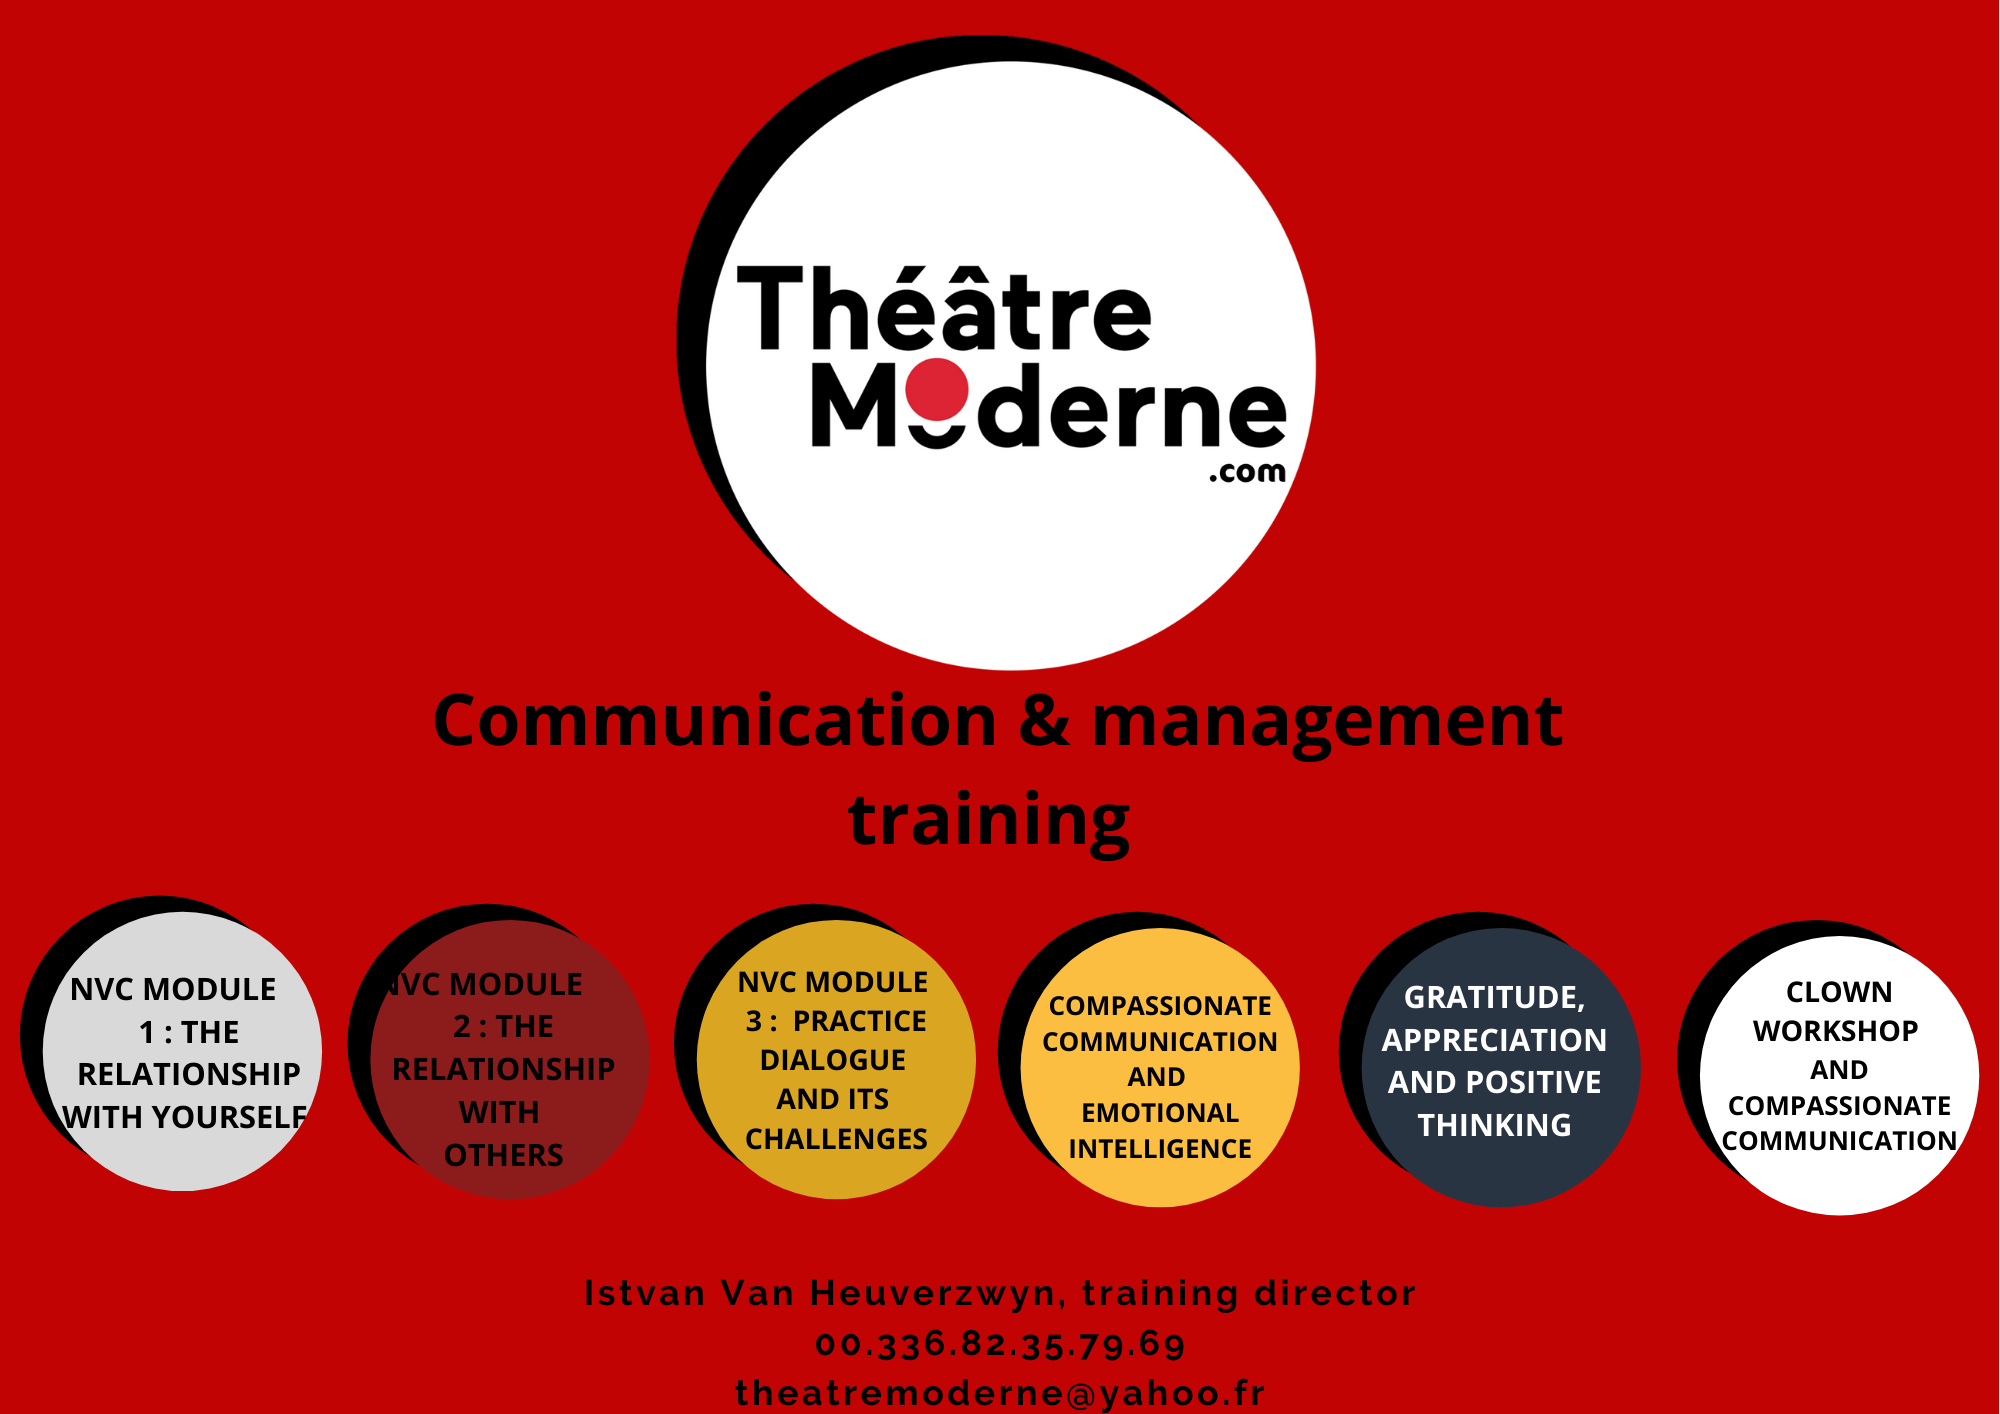 5 - Registration, quote, communication and management training